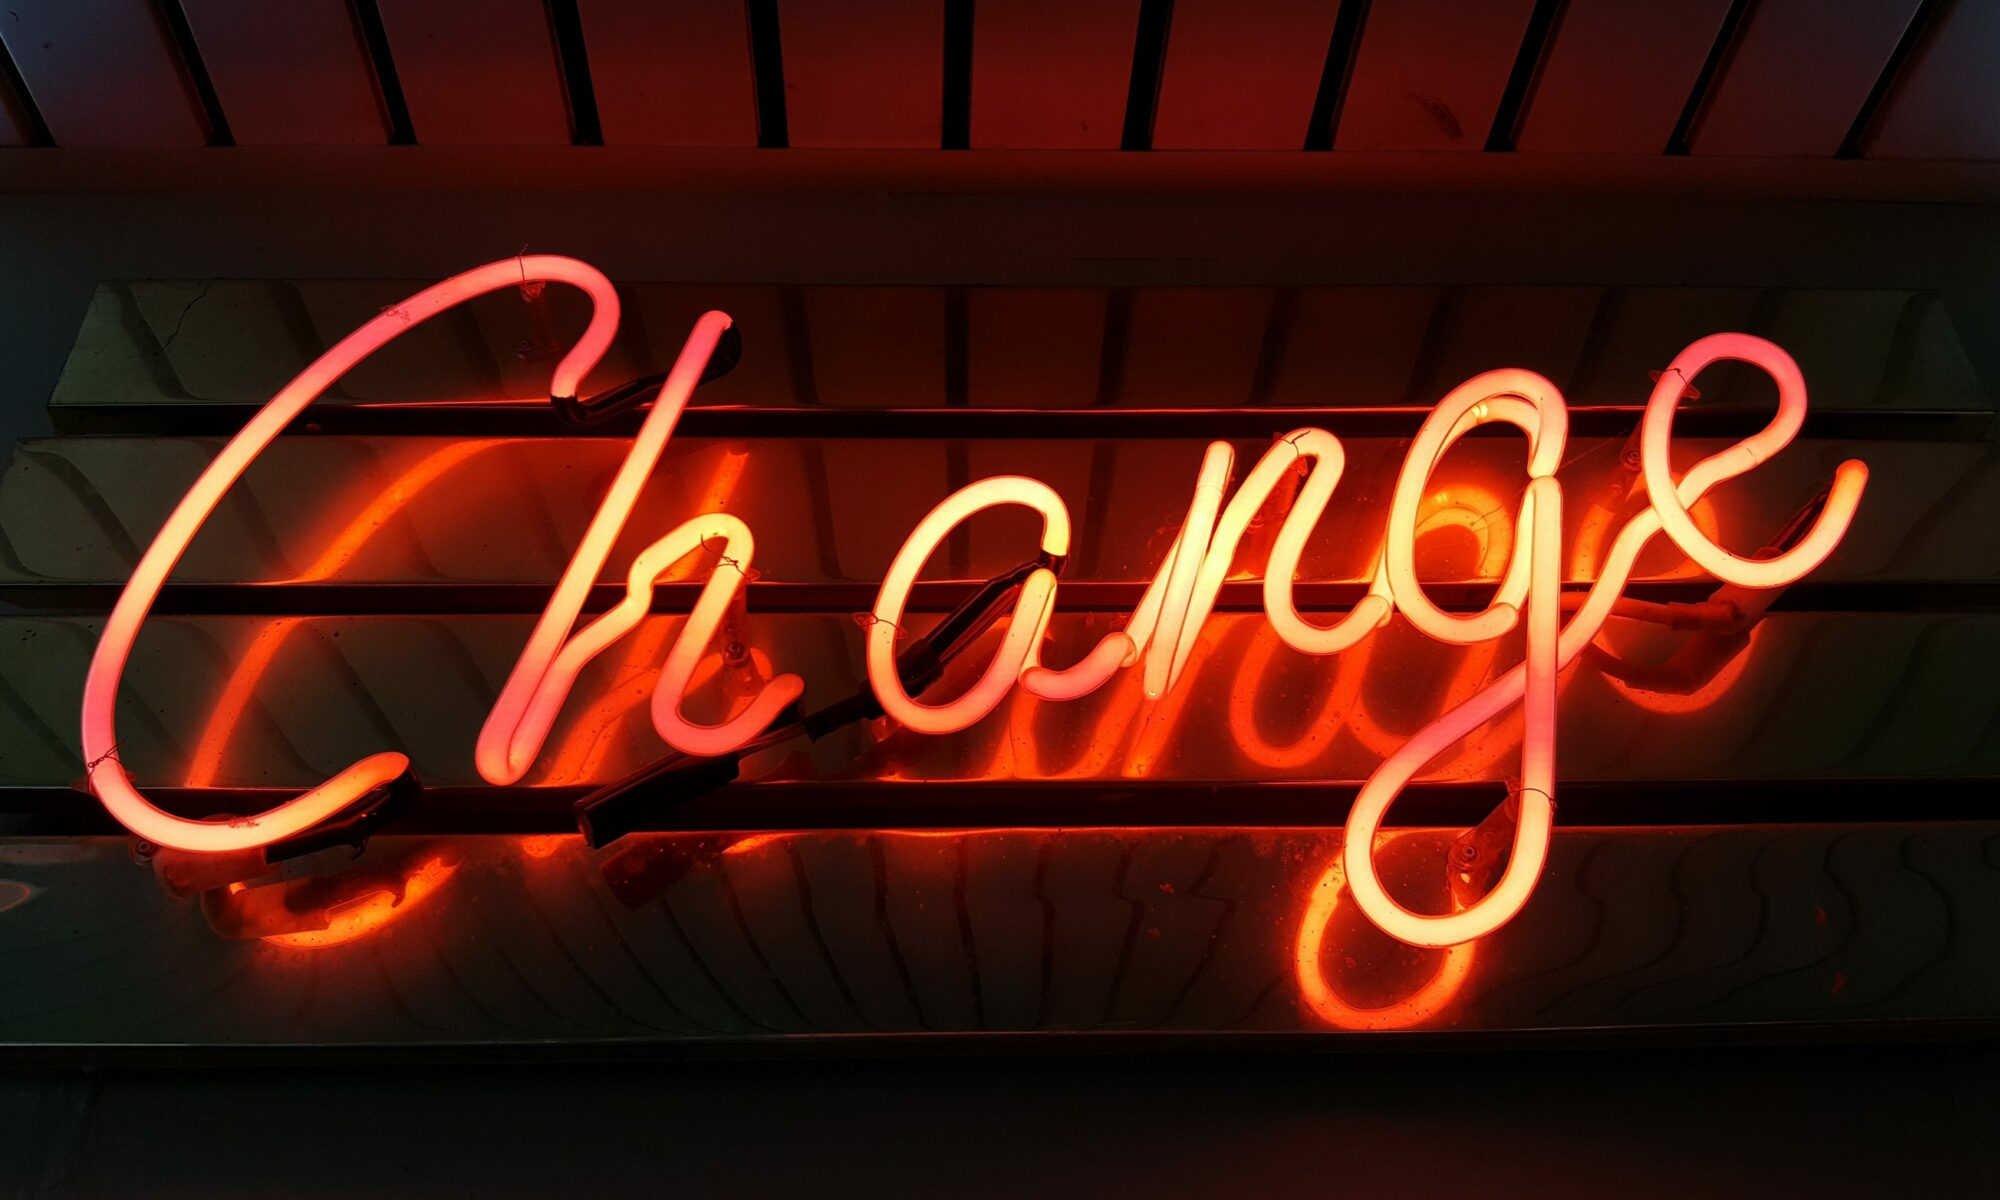 The most important designer traits to survive change